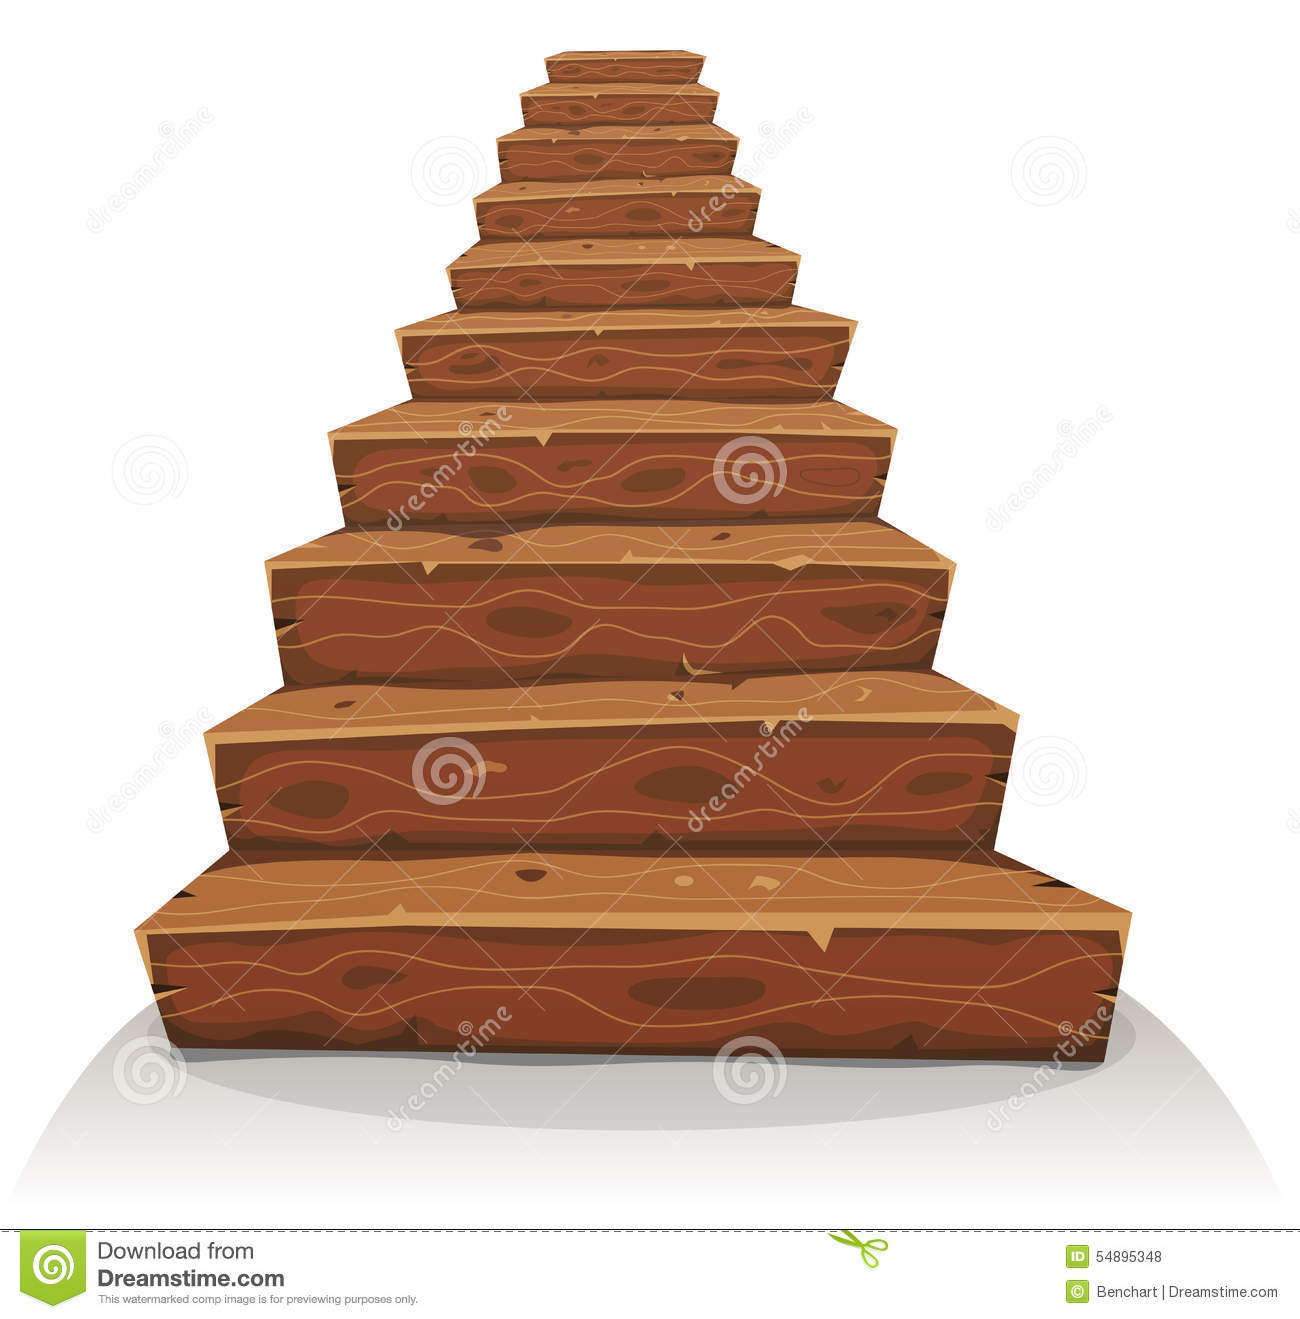 Amazing House Construction App #2: Cartoon-wood-stairs-illustration-funny-wooden-stairway-castle-old-house-construction-54895348.jpg